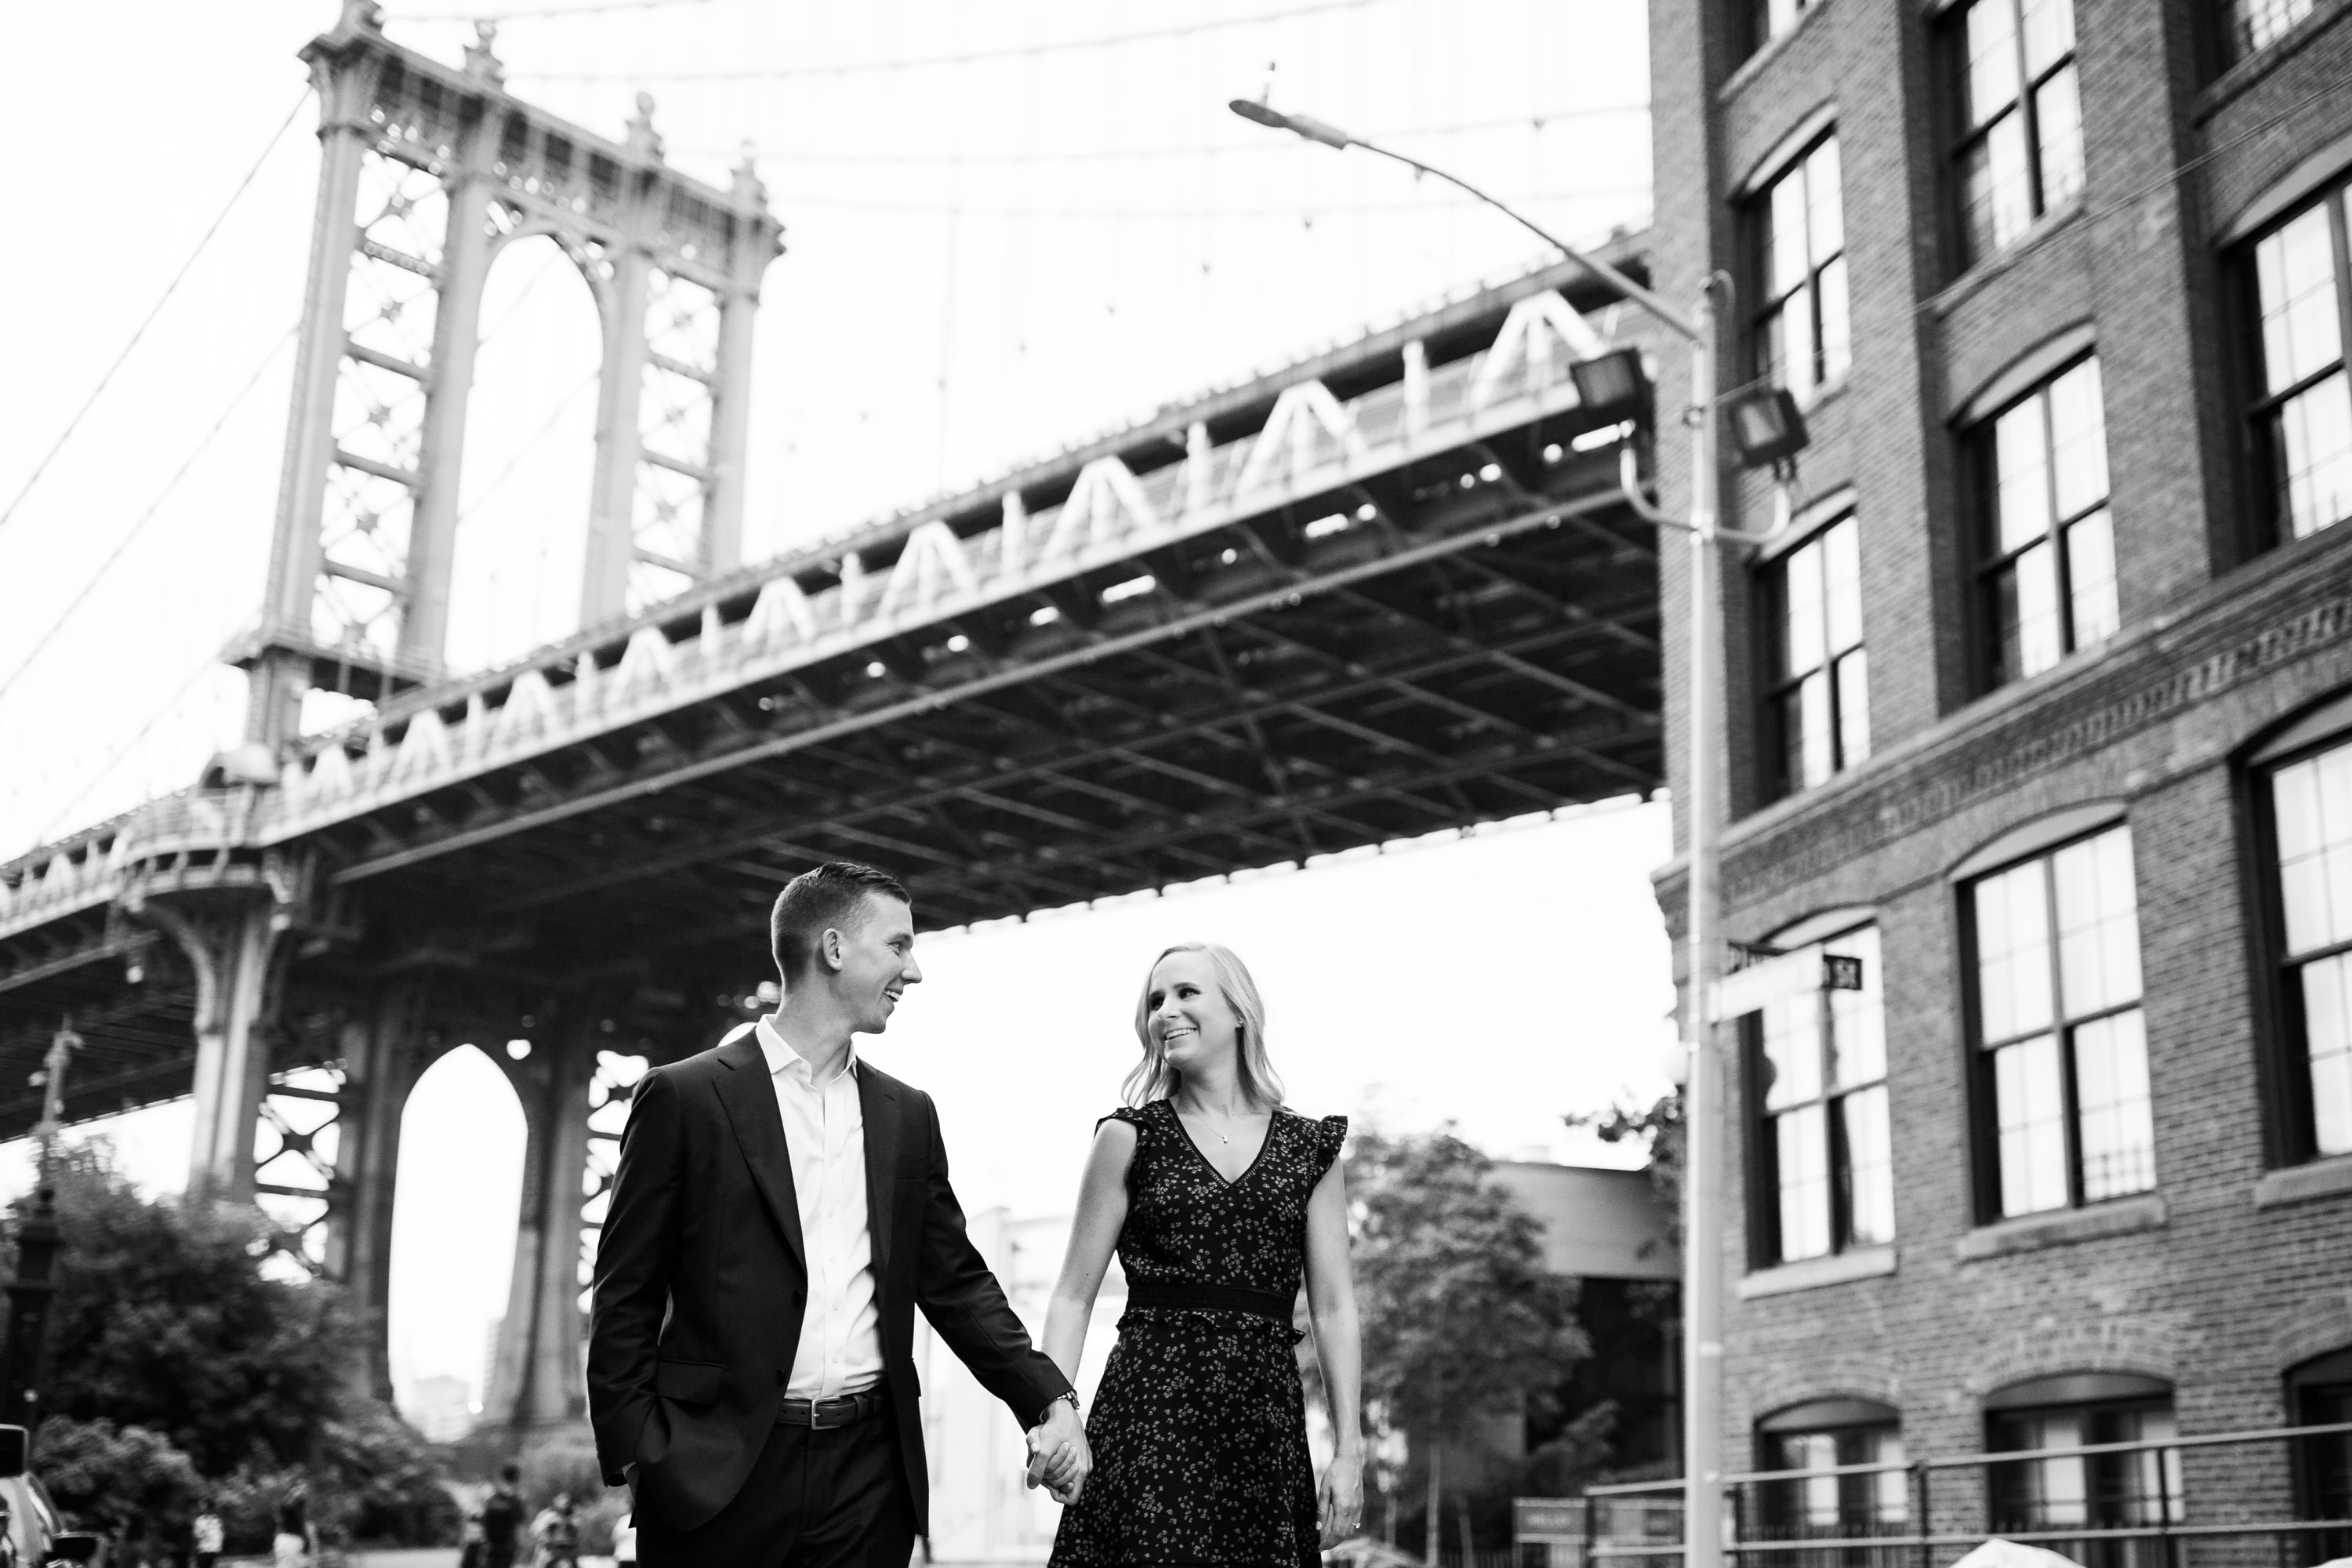 dumbo-brooklyn-nyc-engagement-photography-10